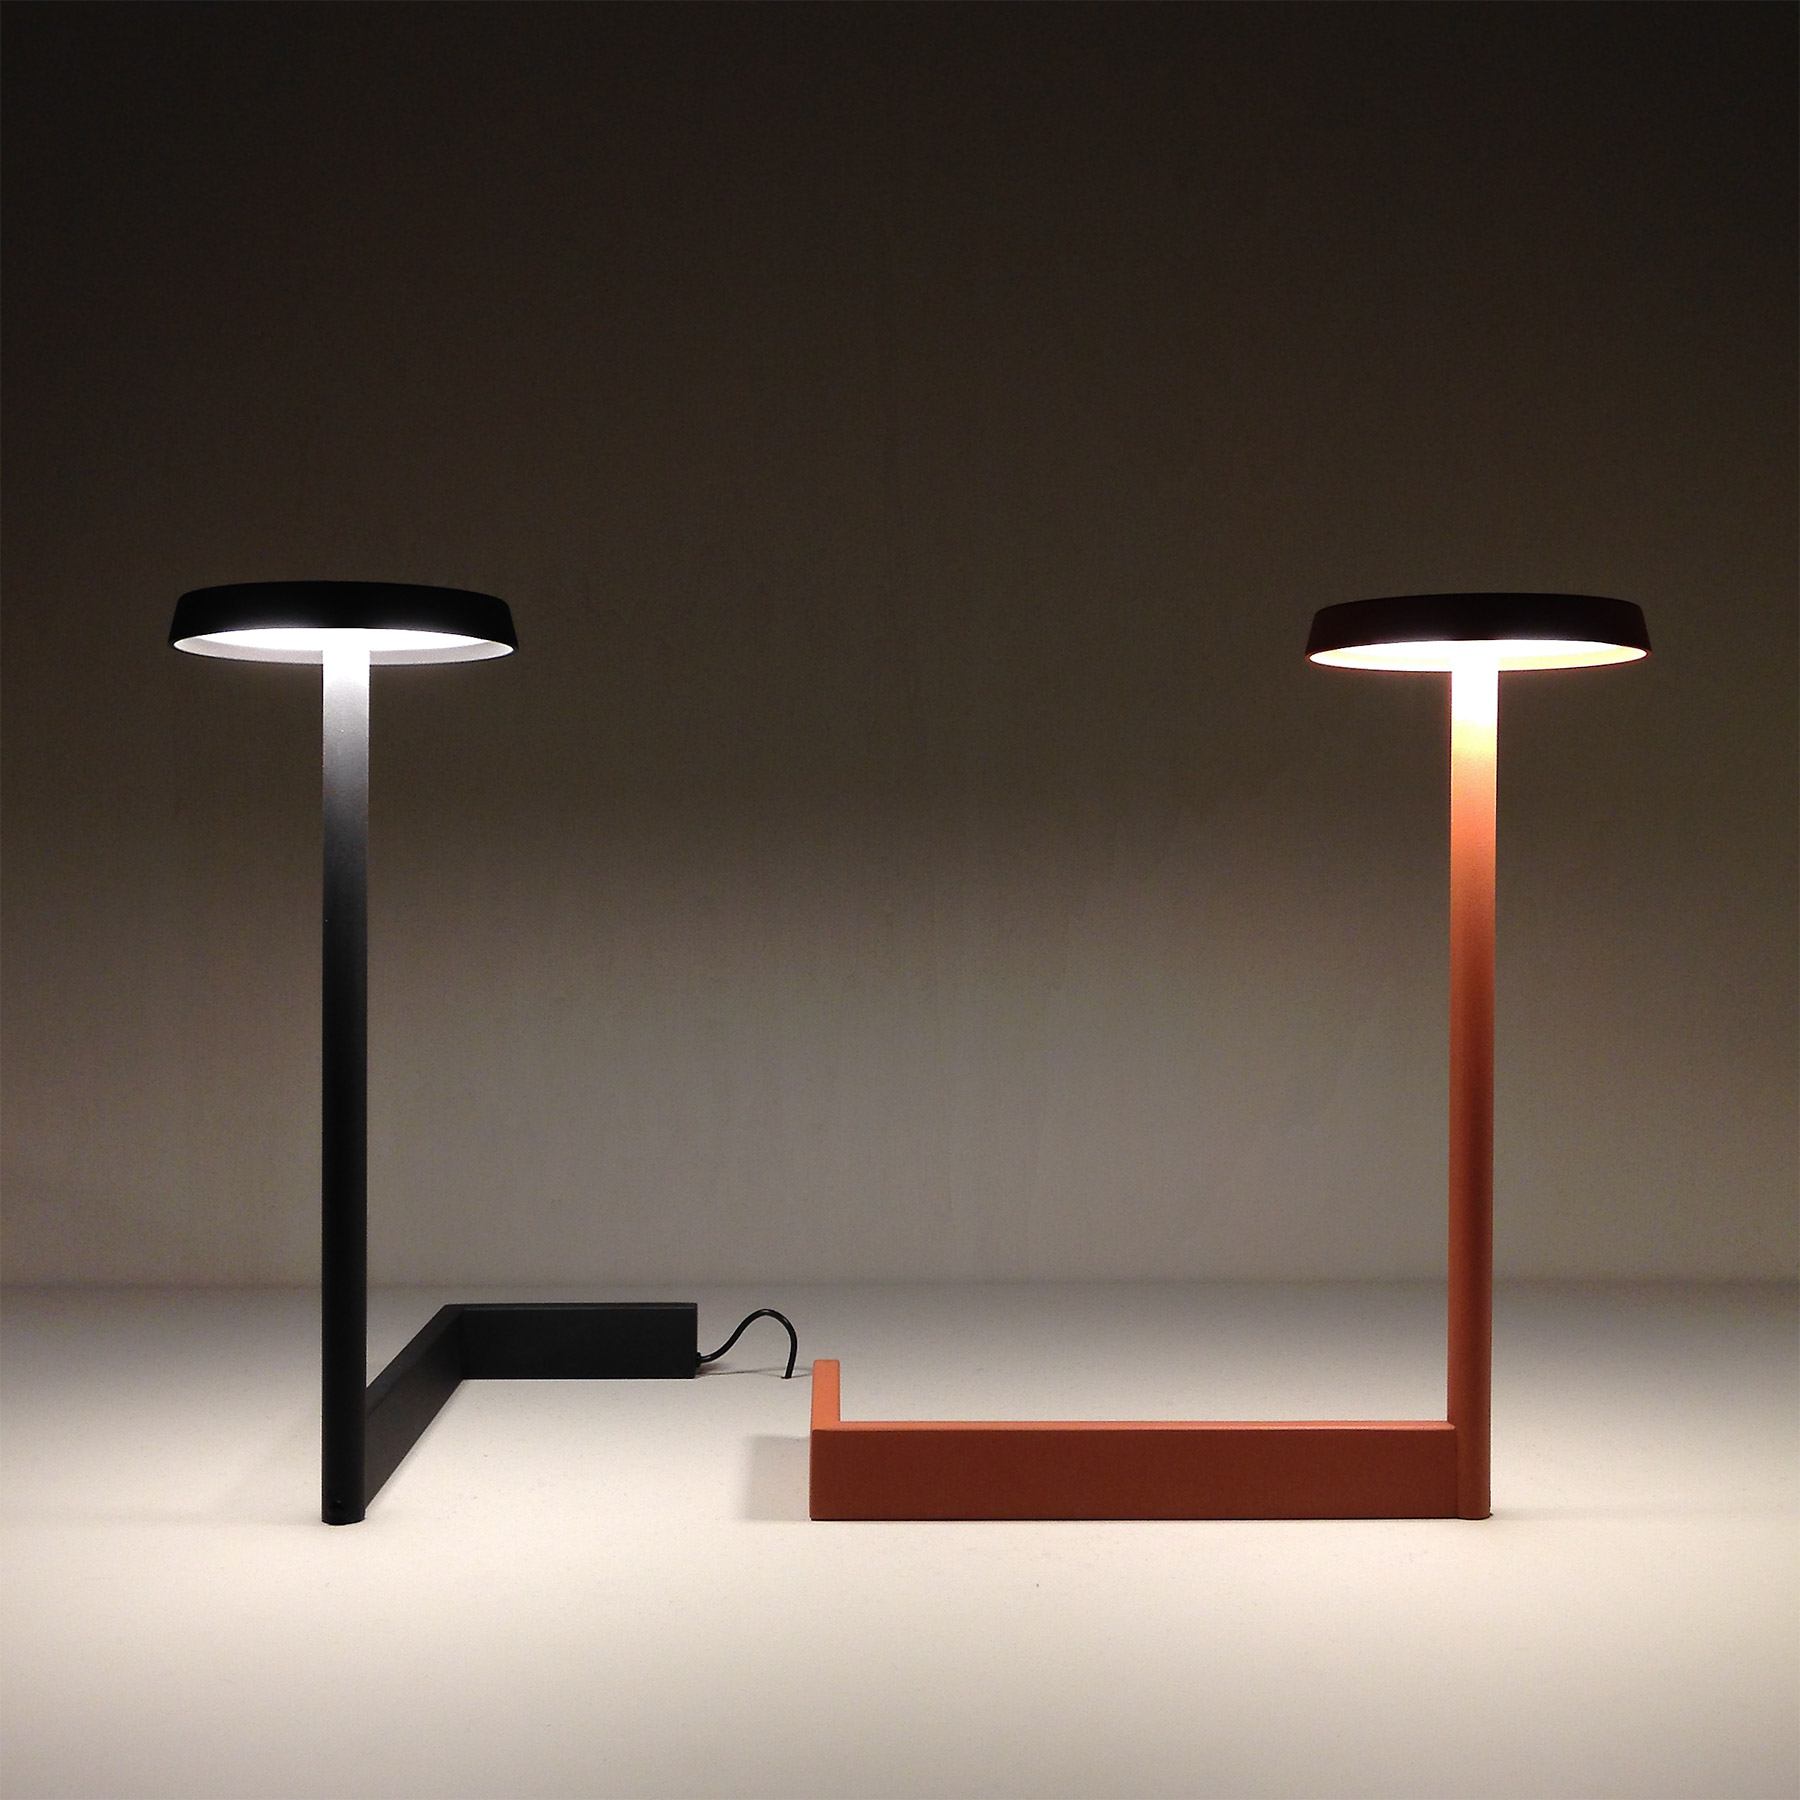 Flat table lamp by Ichiro Iwasaki for Vibia